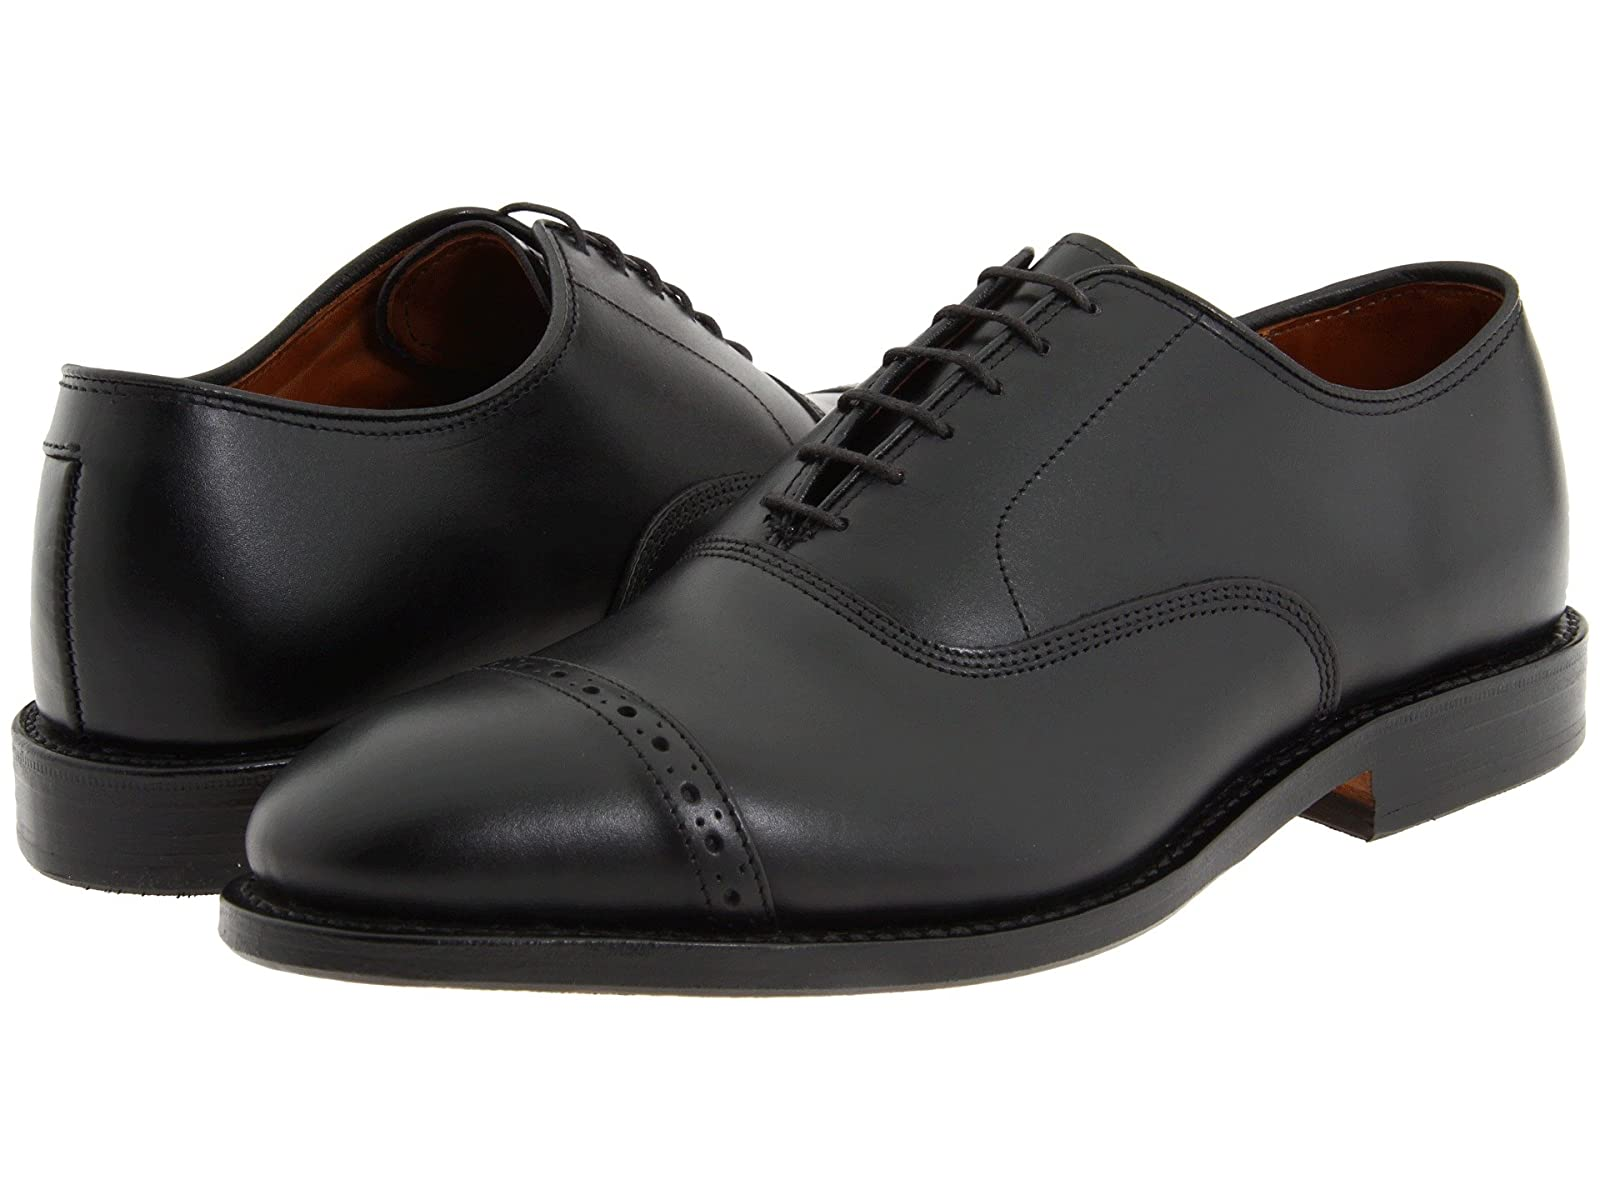 Allen Edmonds Fifth AvenueAtmospheric grades have affordable shoes